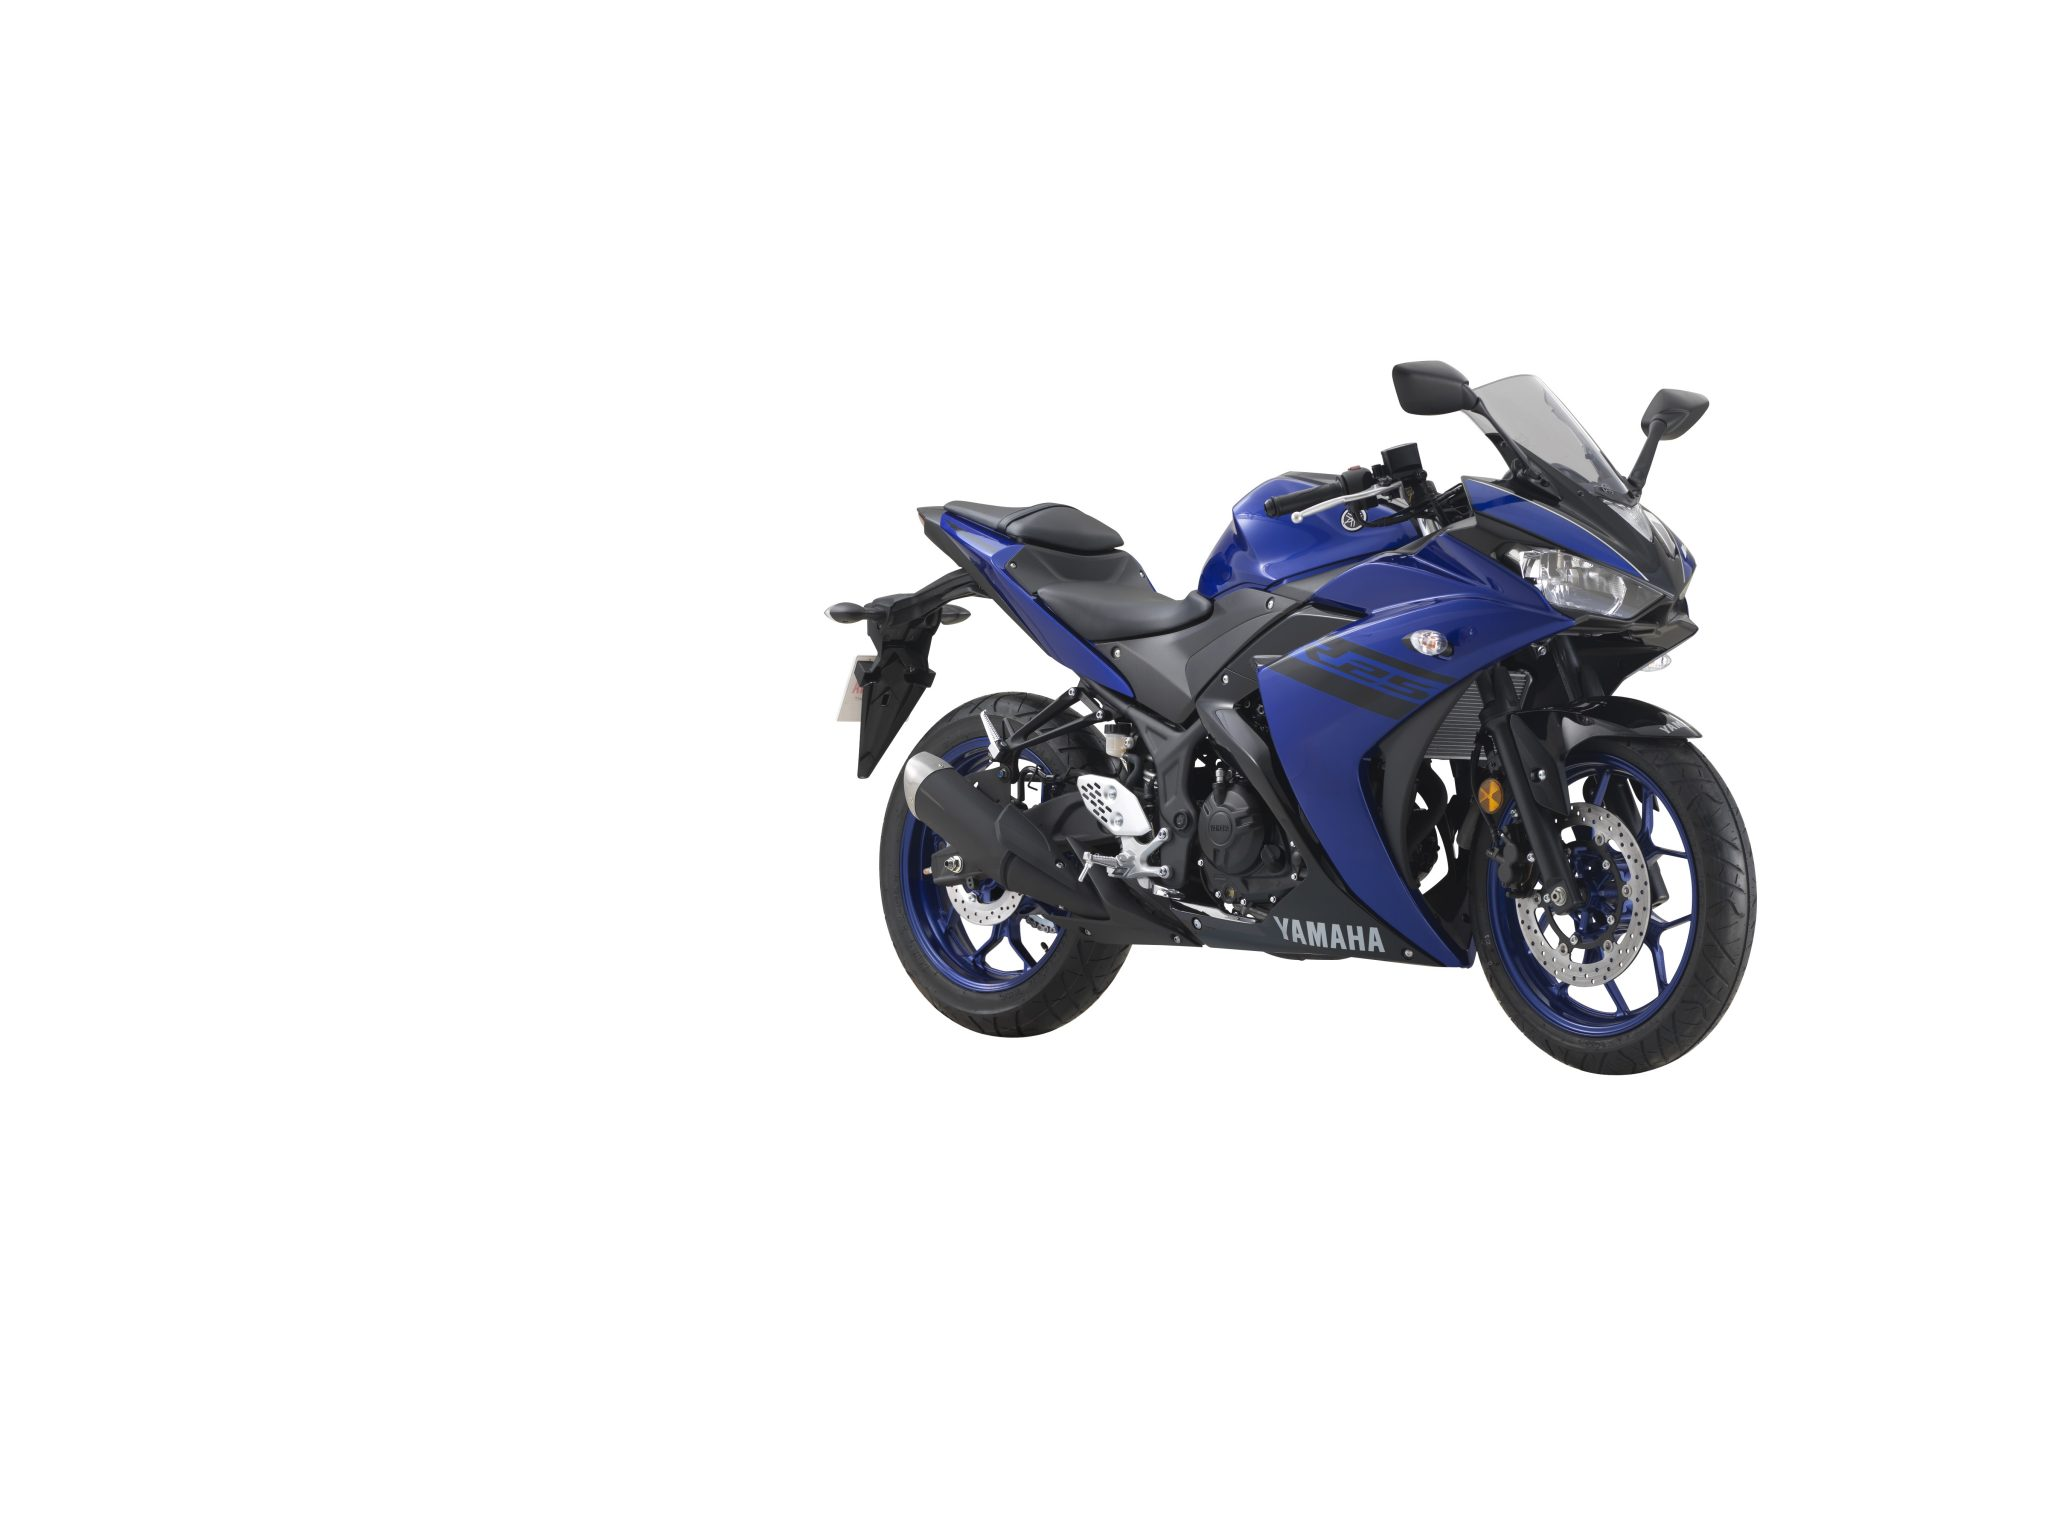 Yamaha YZF R-25 gets updated for 2018 with new colours - black & blue